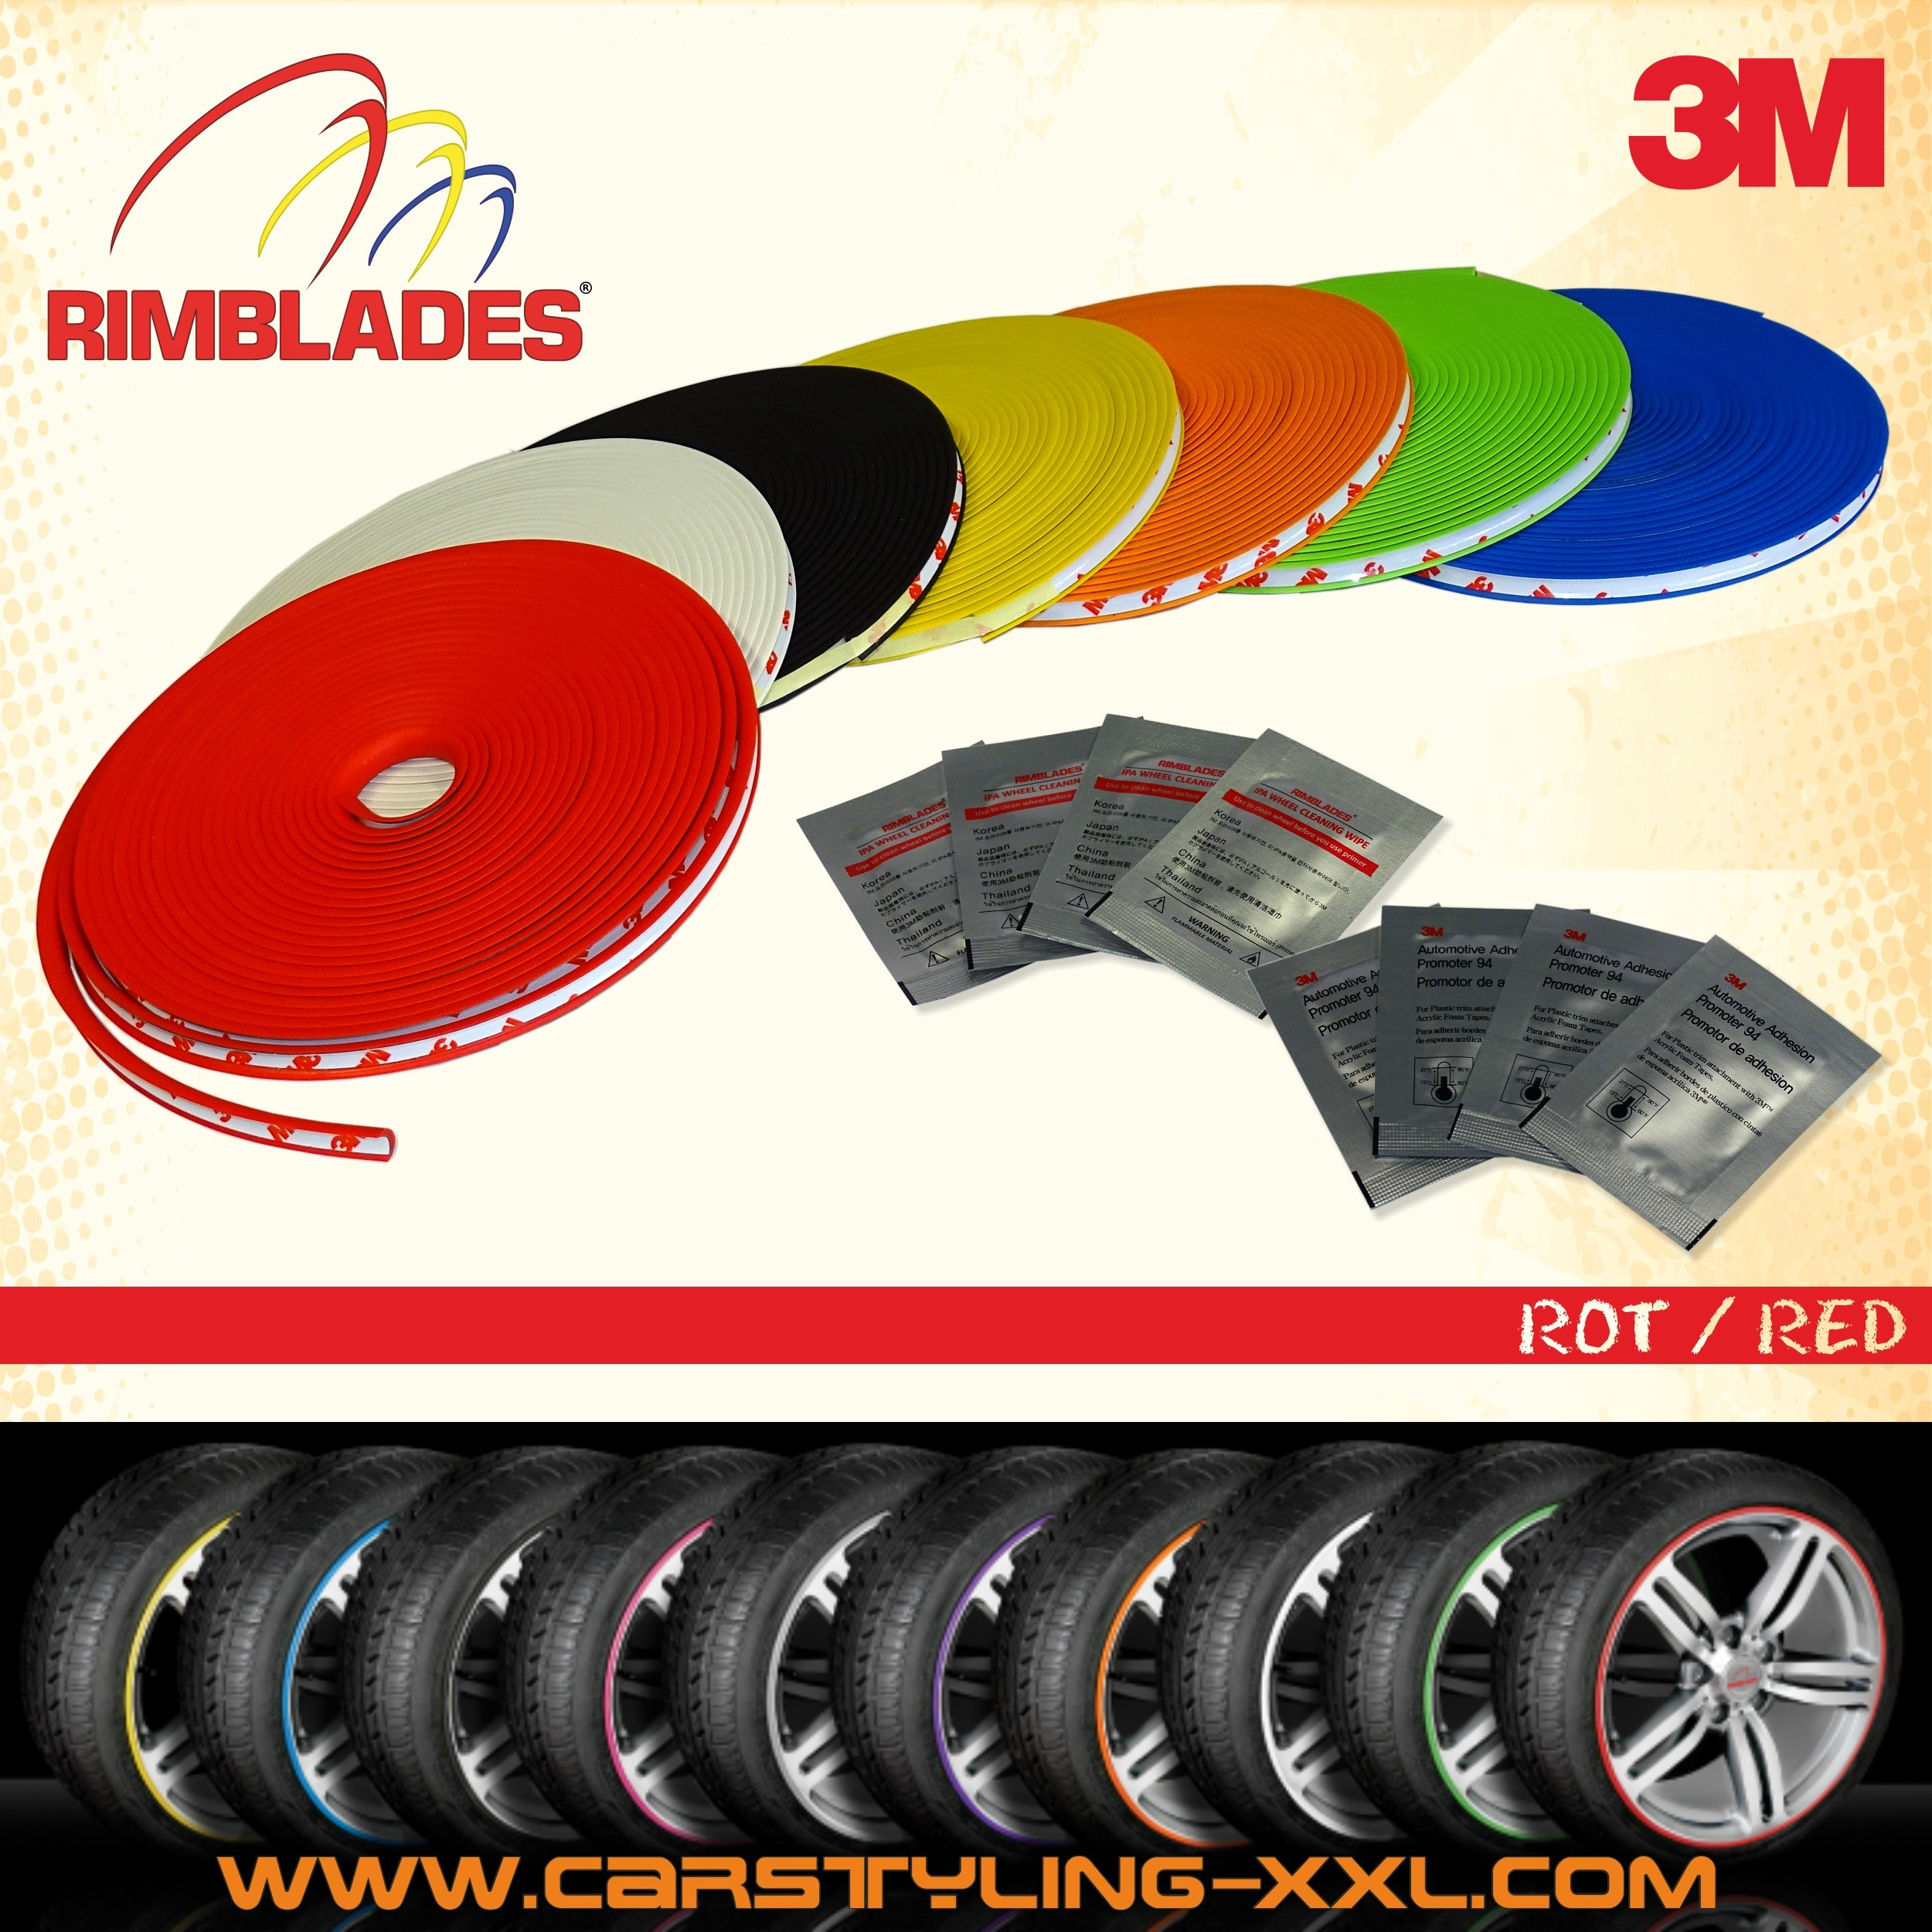 NEW - Rimblades with 3M glue - Singlepack - colour: red - Premium rim protection and styling for alloy wheel rims up to 22'' – Bild 1